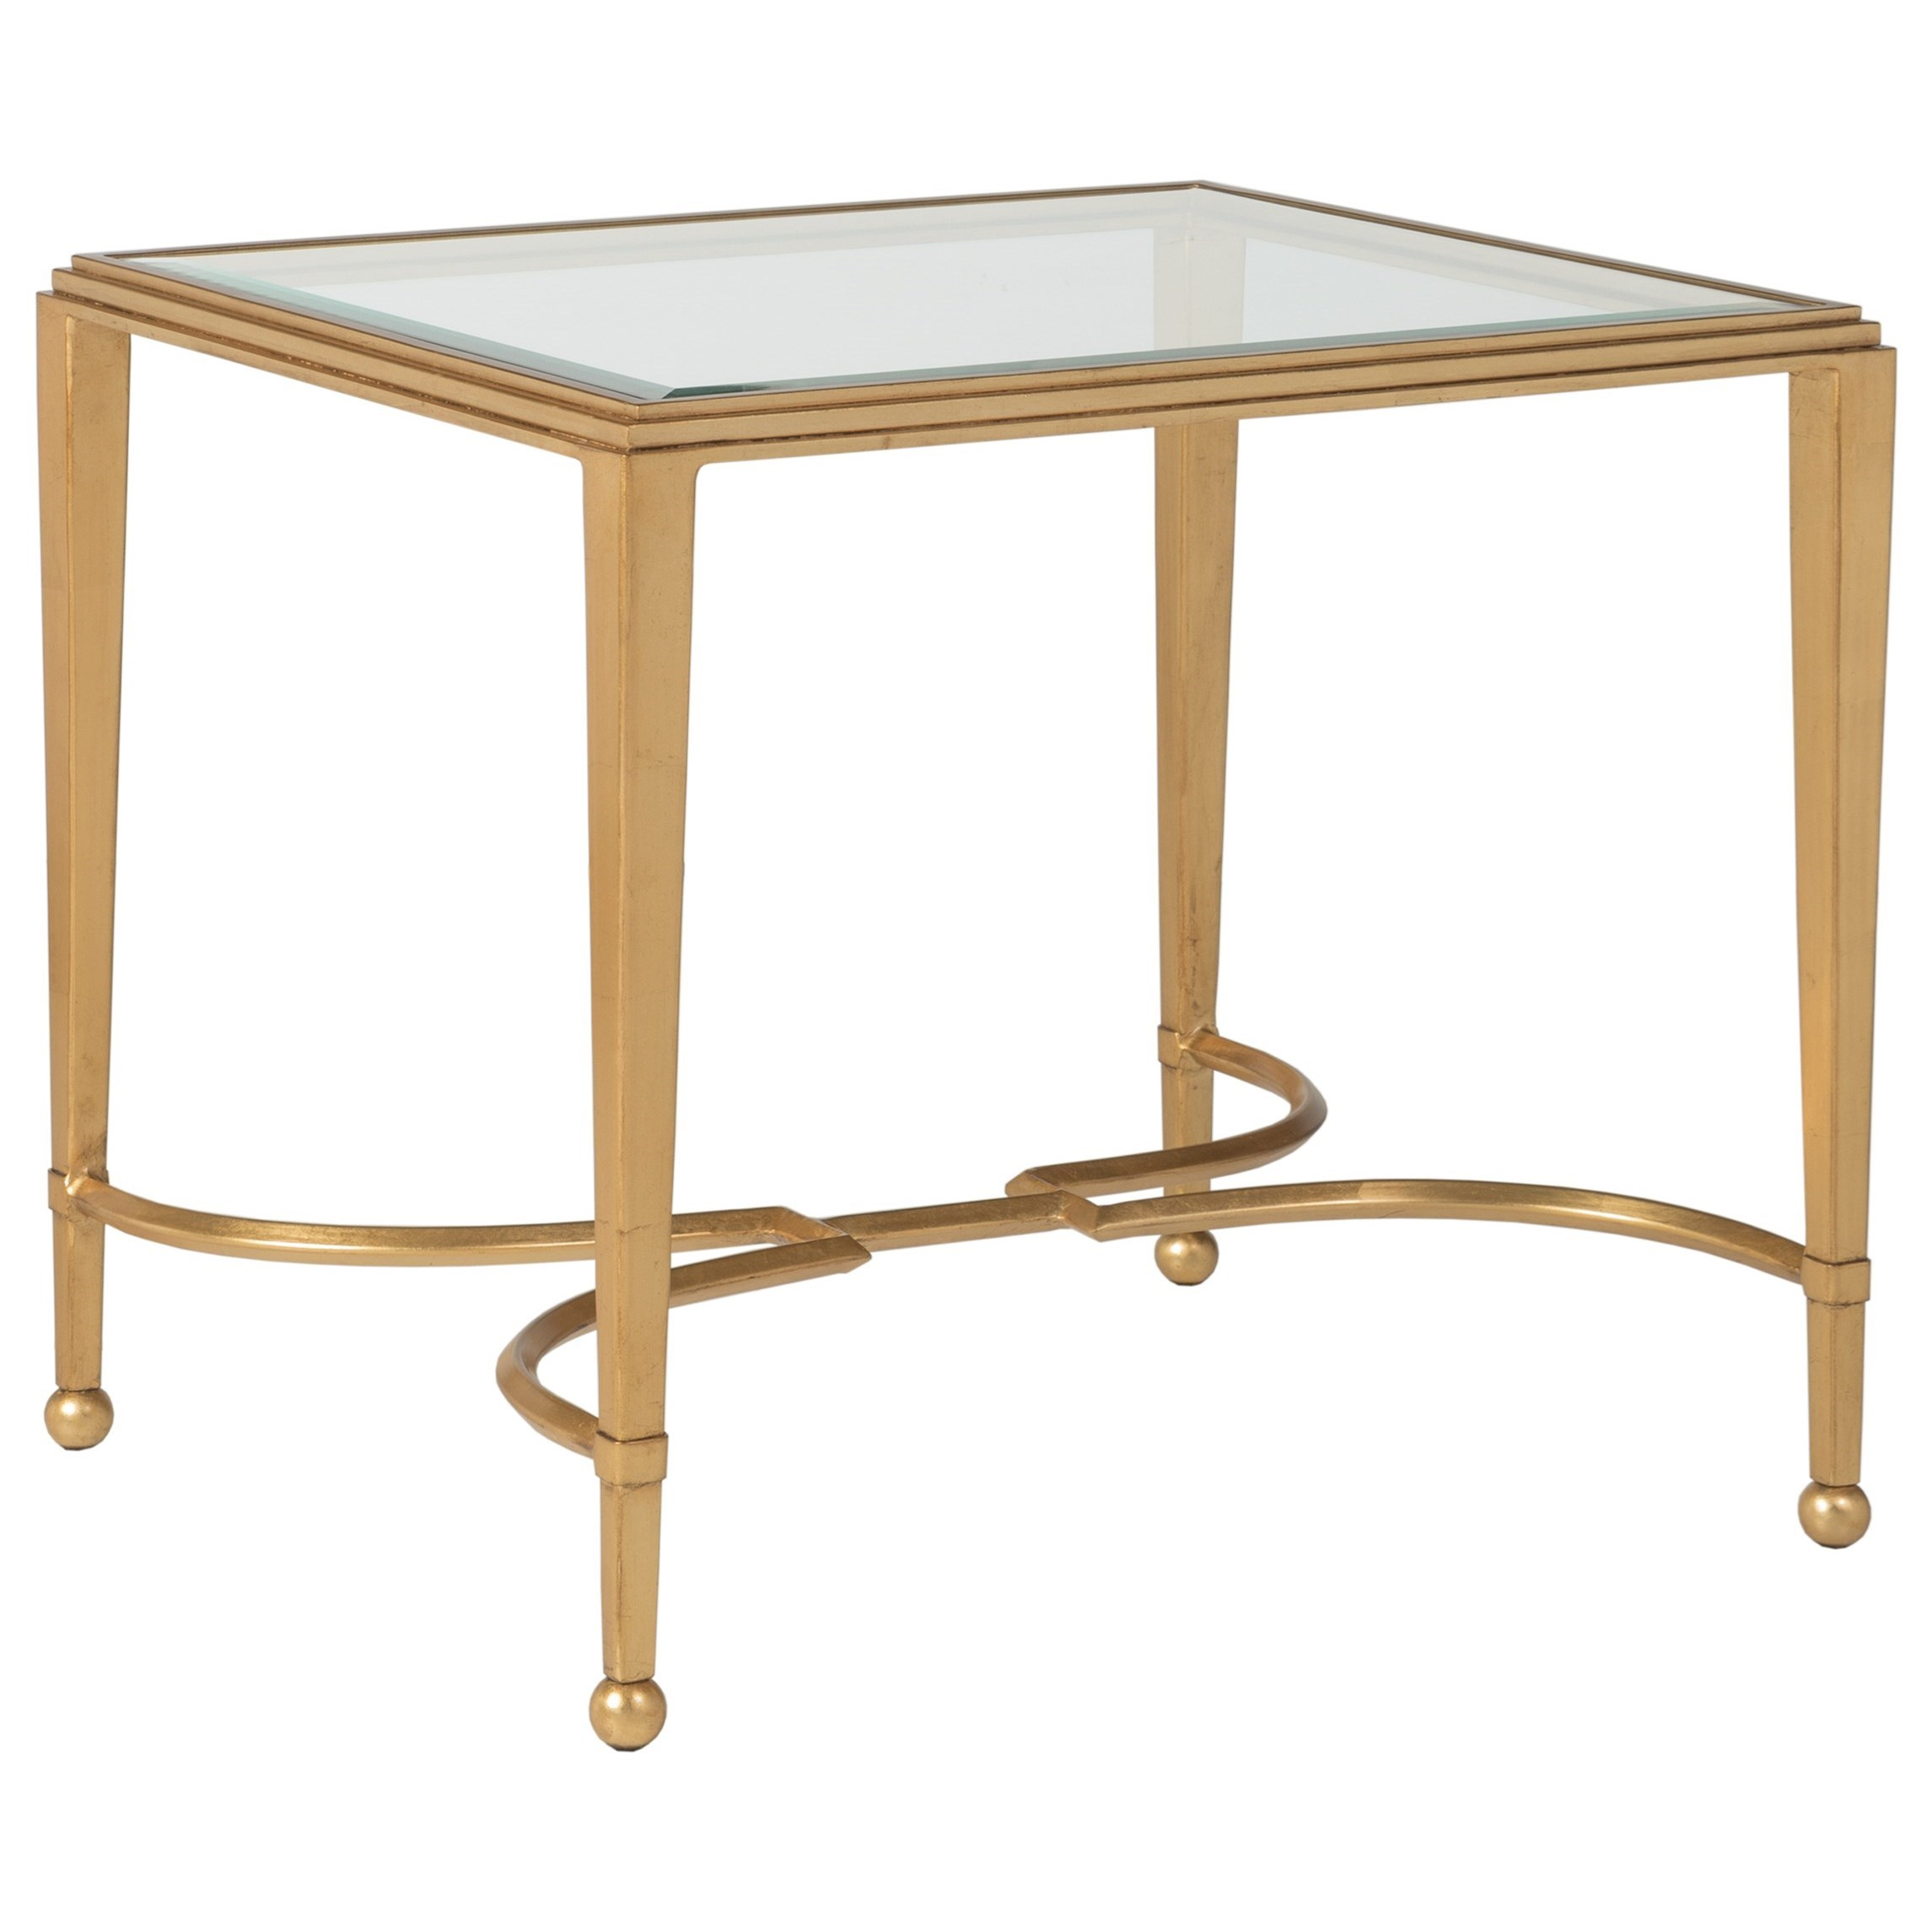 Metal Designs Sangioves Rectangular End Table by Artistica at Baer's Furniture